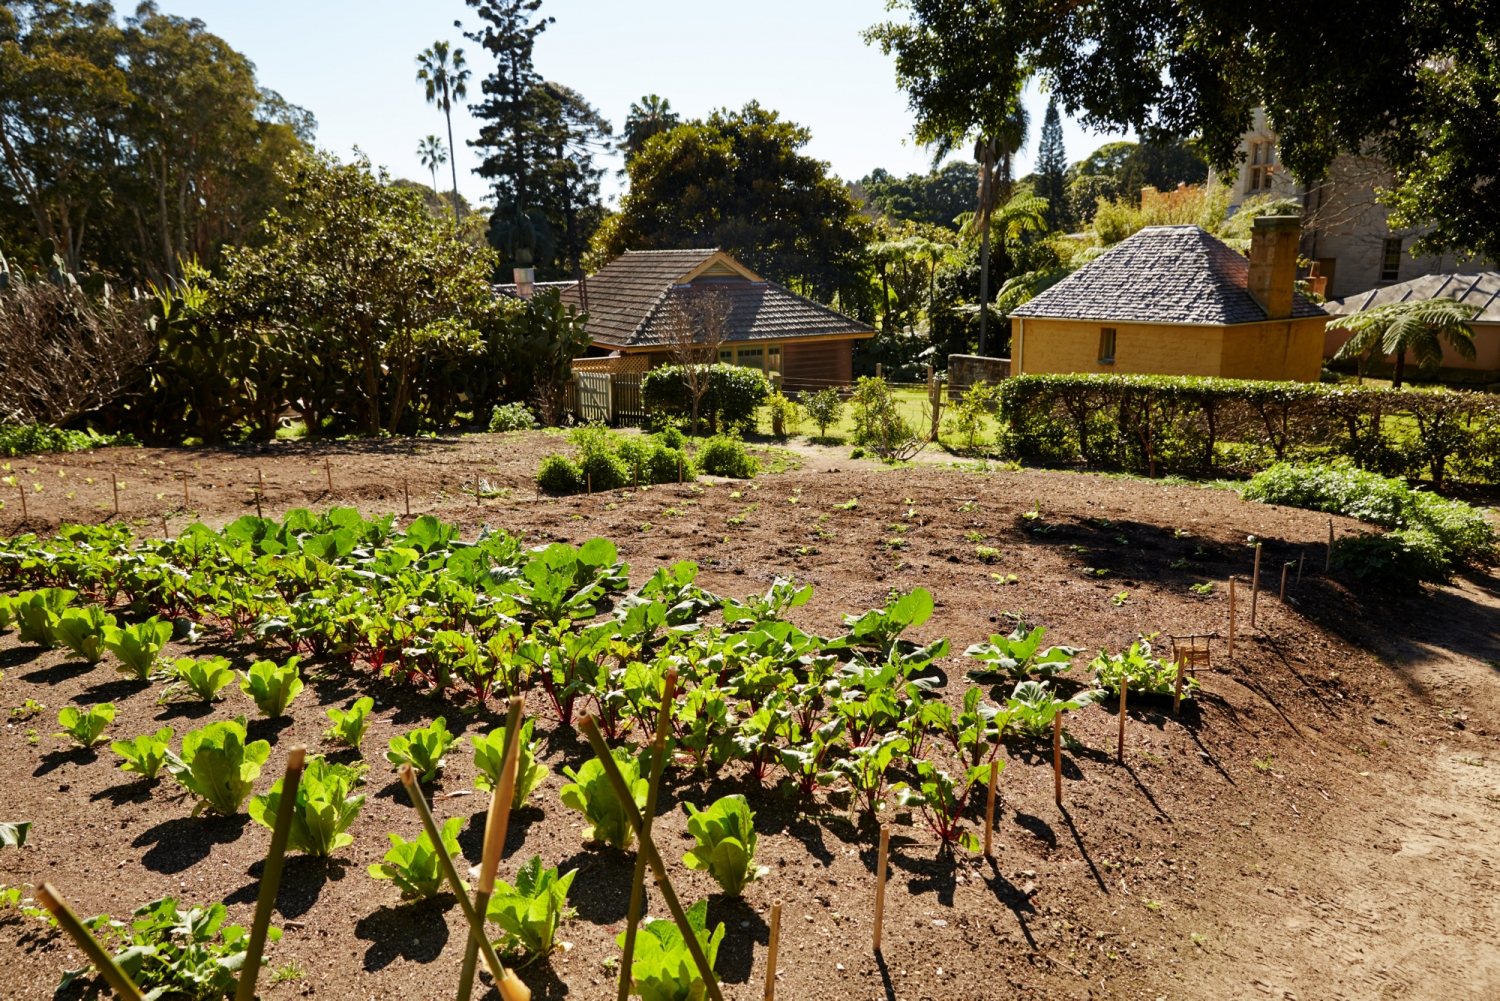 View of vegetable garden with house in background.